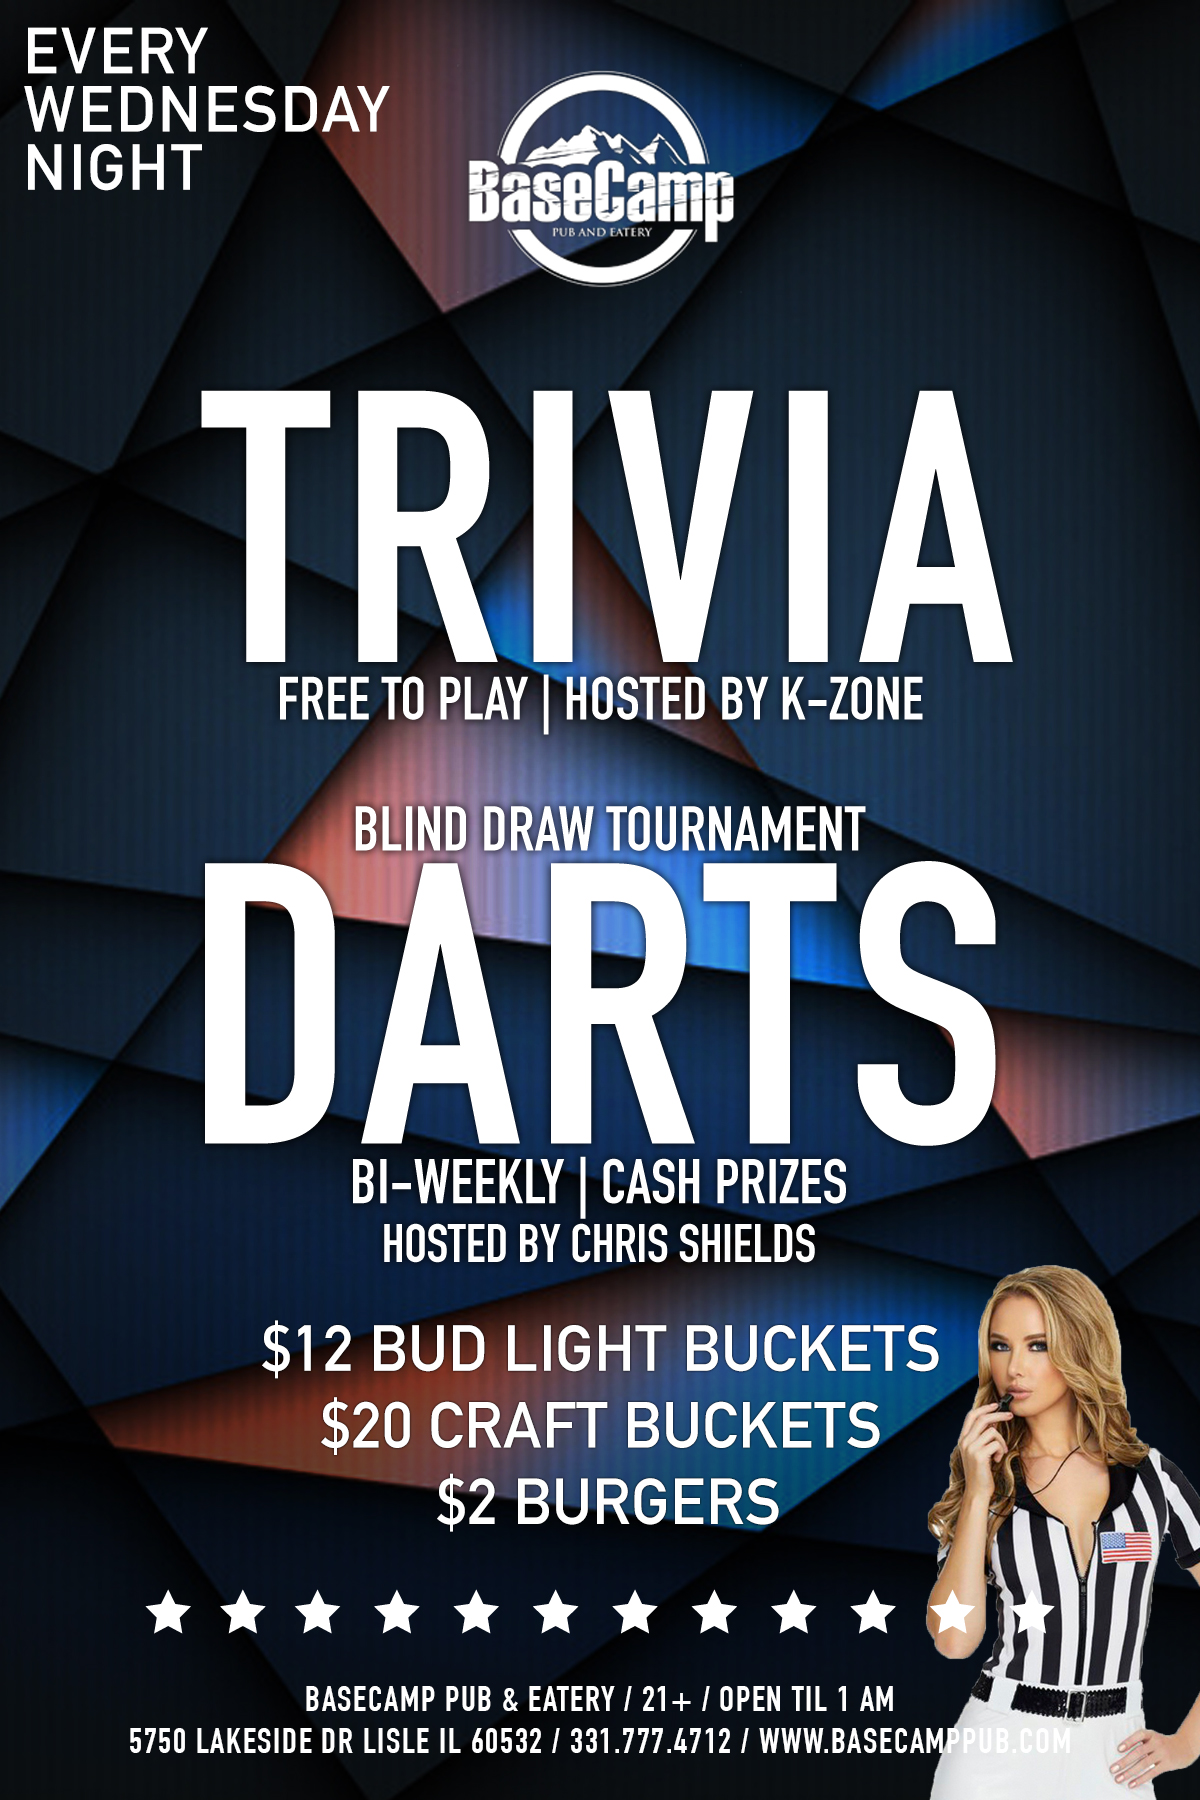 K-Zone Trivia & Blind Draw Dart Tournament